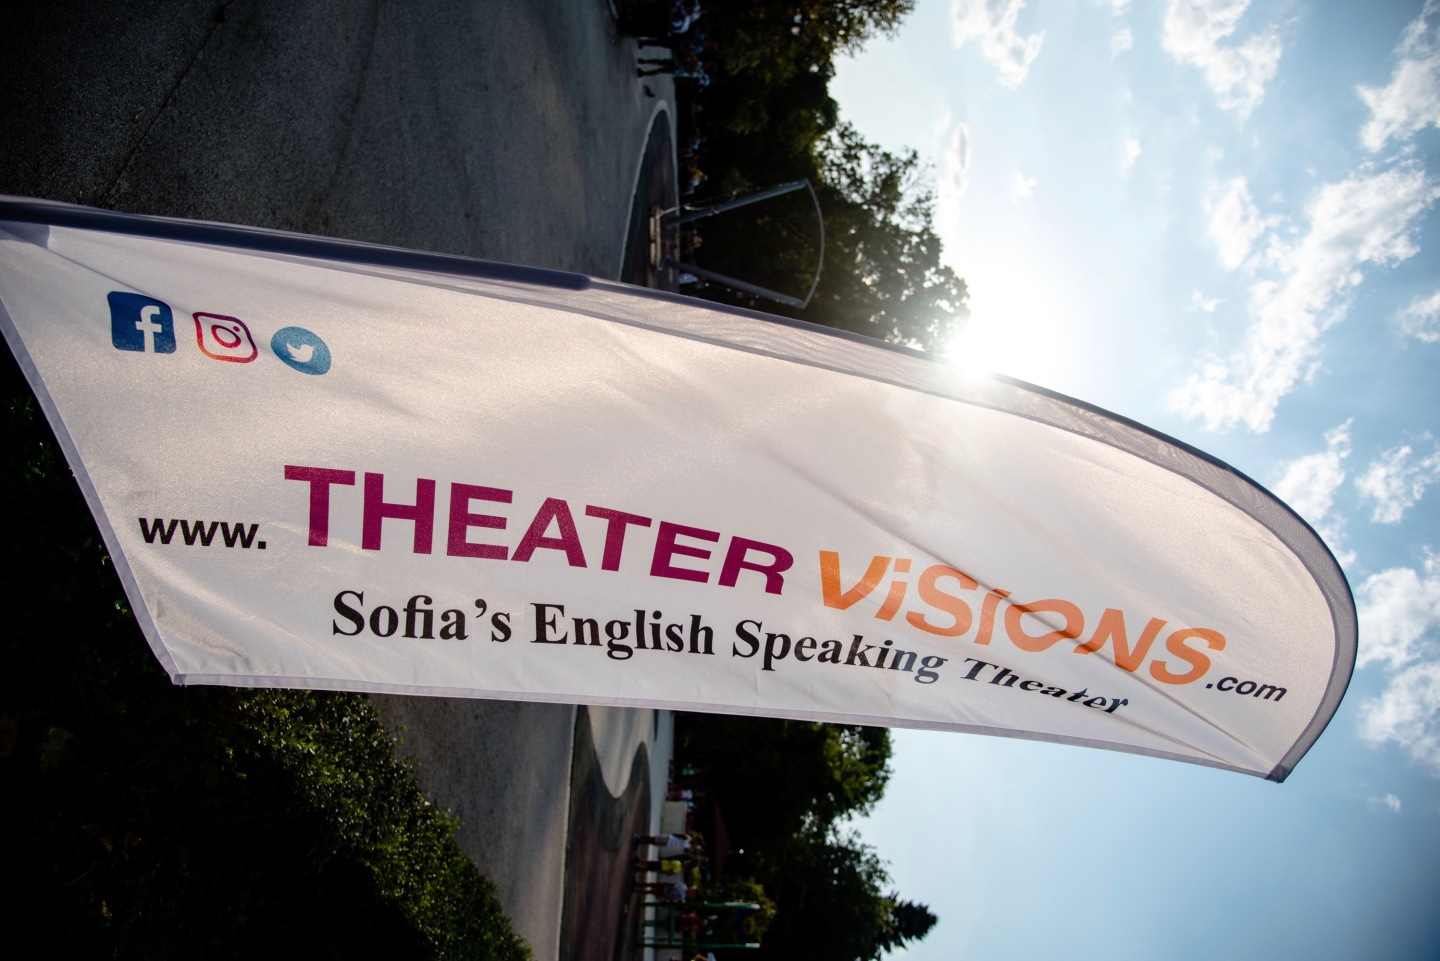 Theater Visions flag rotated to side